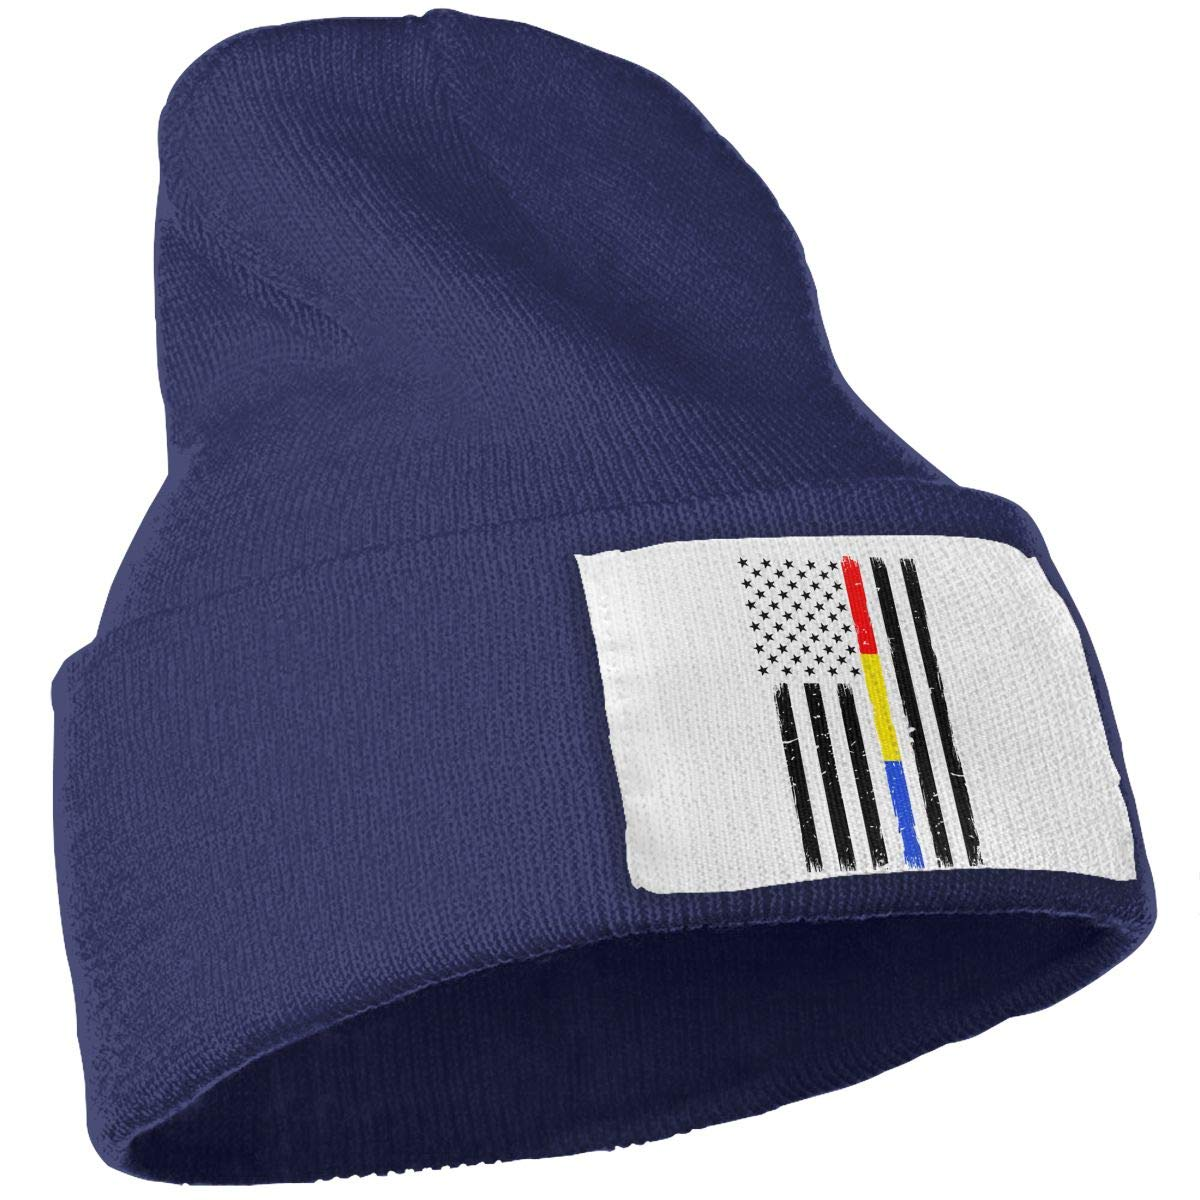 WHOO93@Y Mens Womens 100/% Acrylic Knitted Hat Cap Thin Red Blue Gold Line Flag Fashion Ski Cap